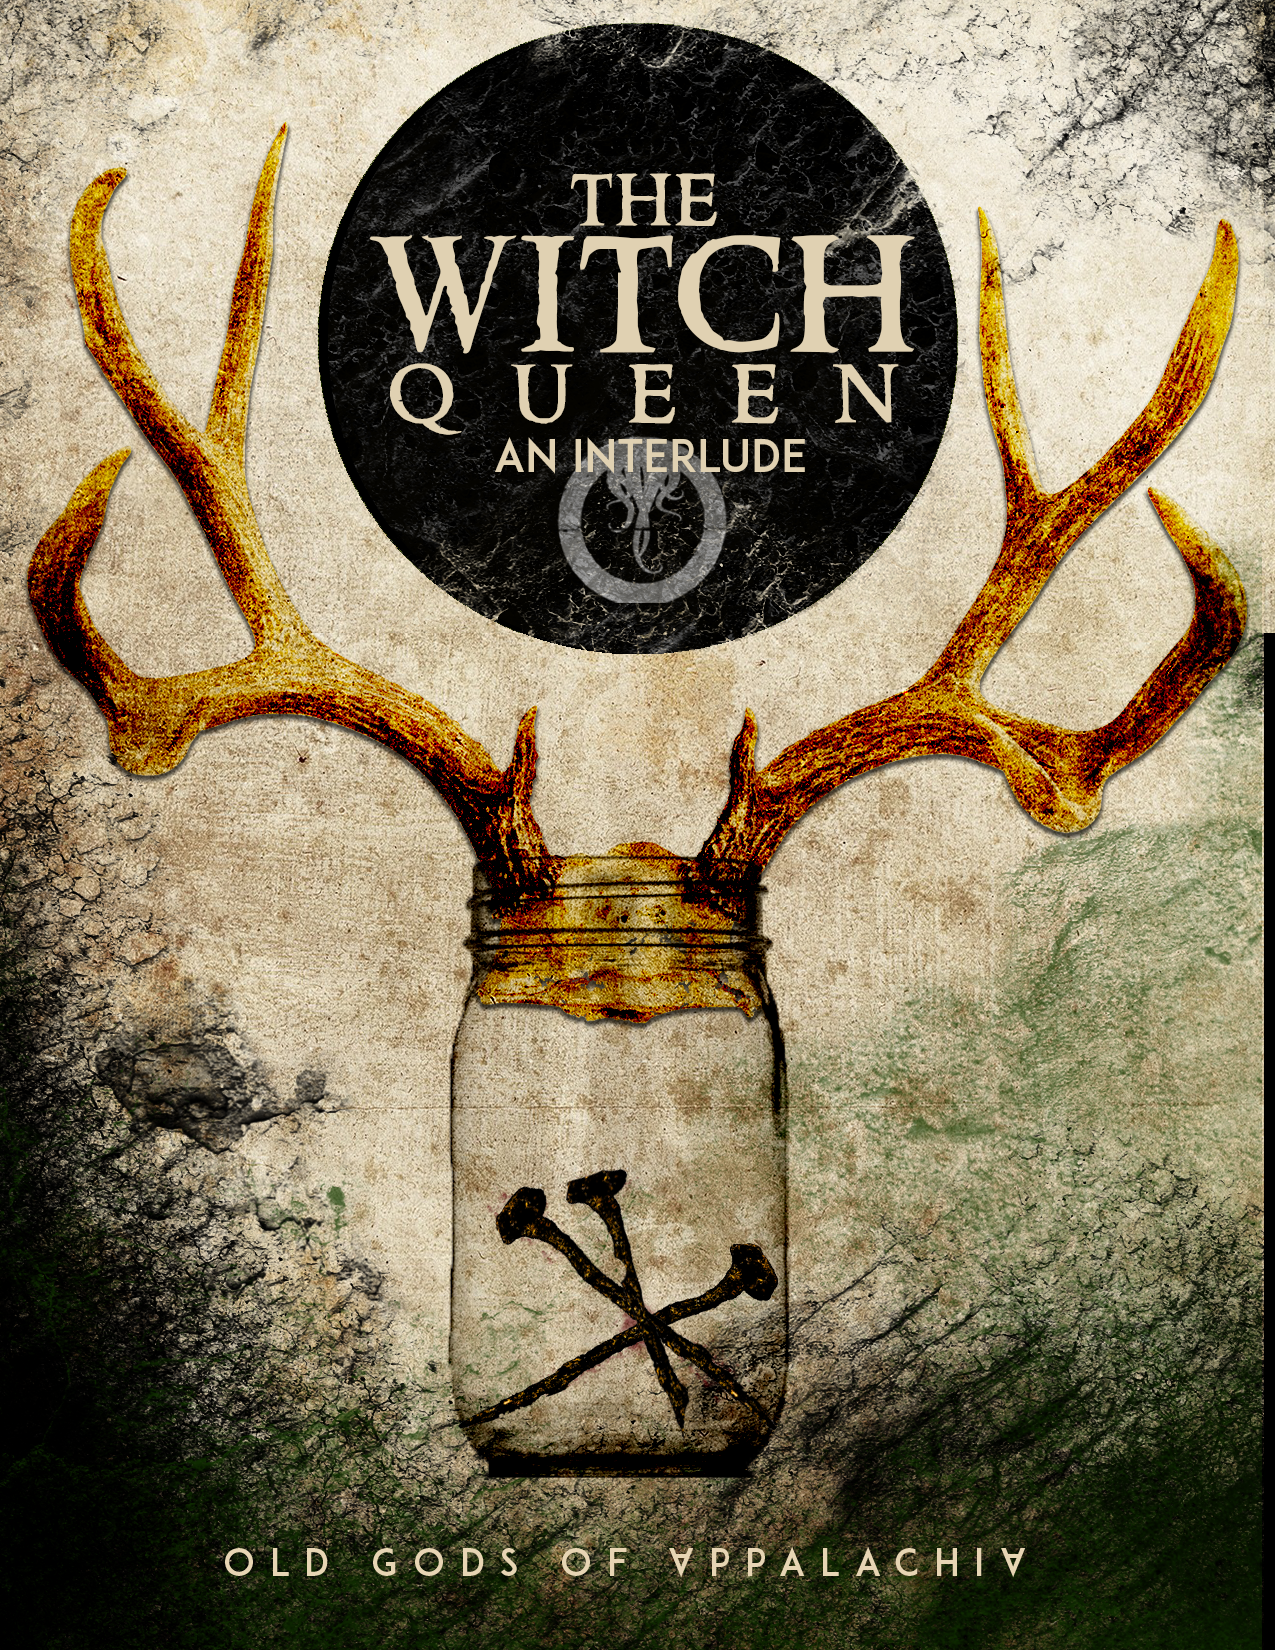 Episode 0.5: The Witch Queen